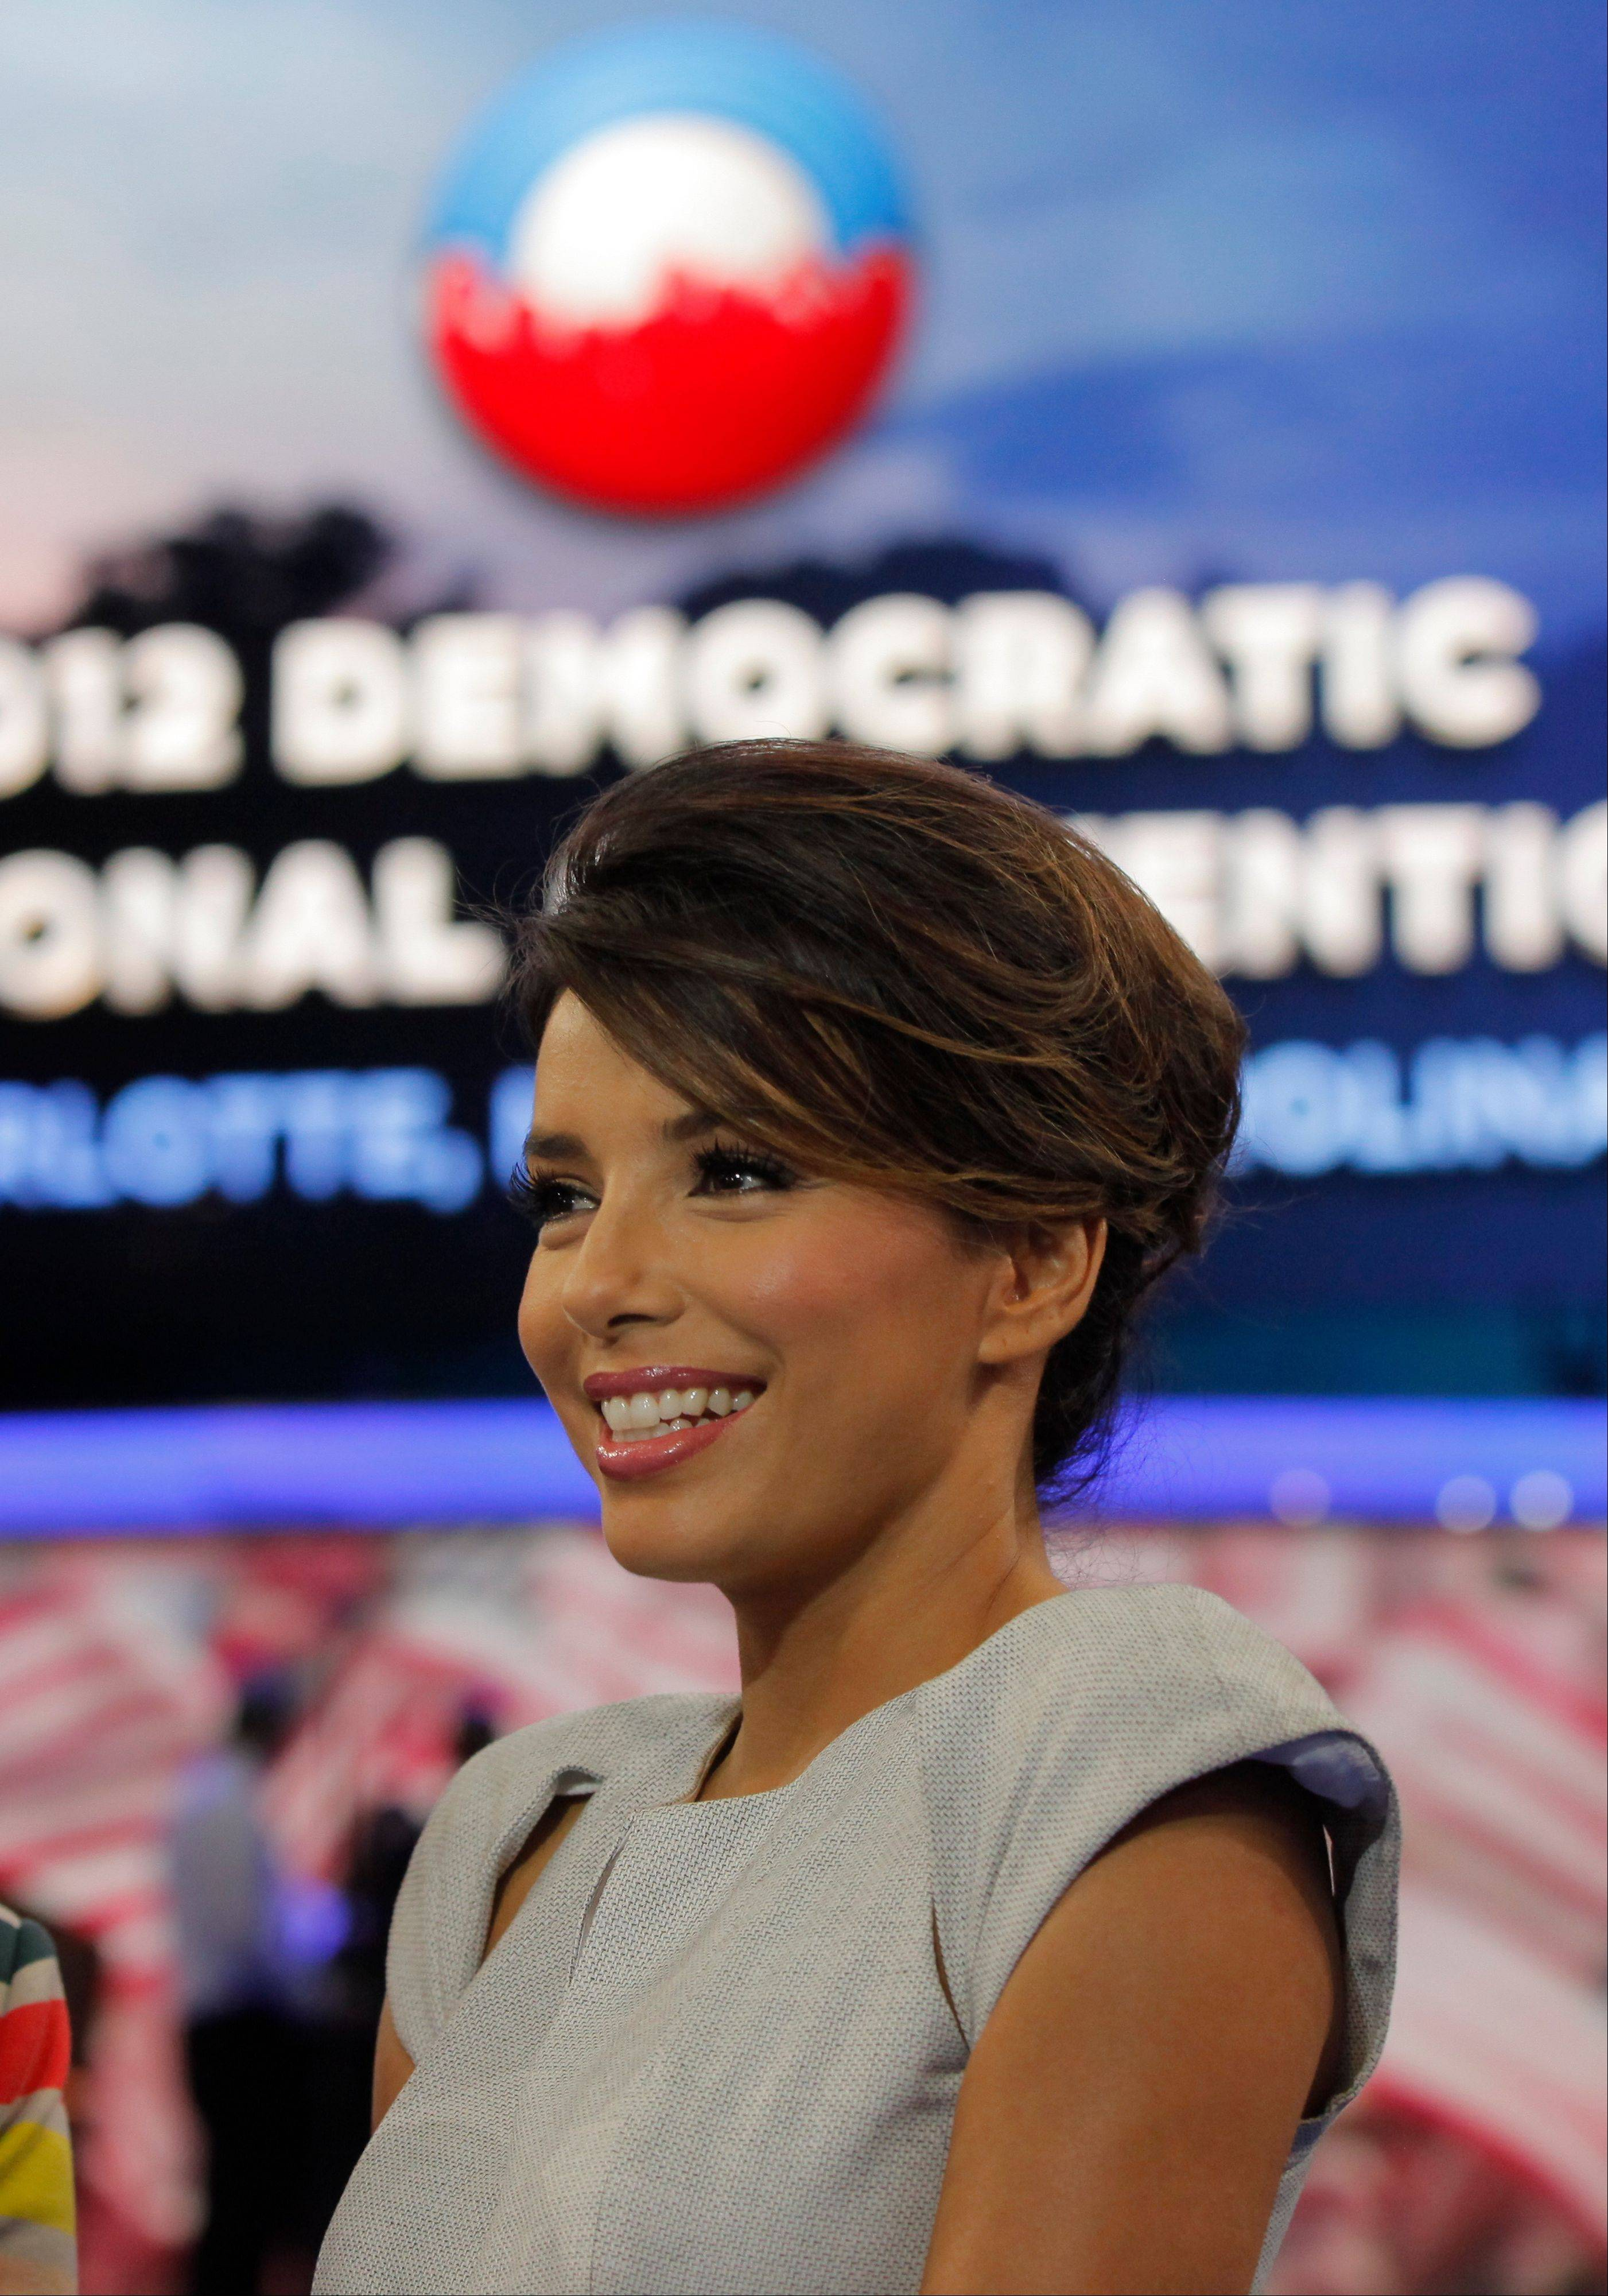 Actress Eva Longoria is interviewed on the floor of the Democratic National Convention in Charlotte, N.C.